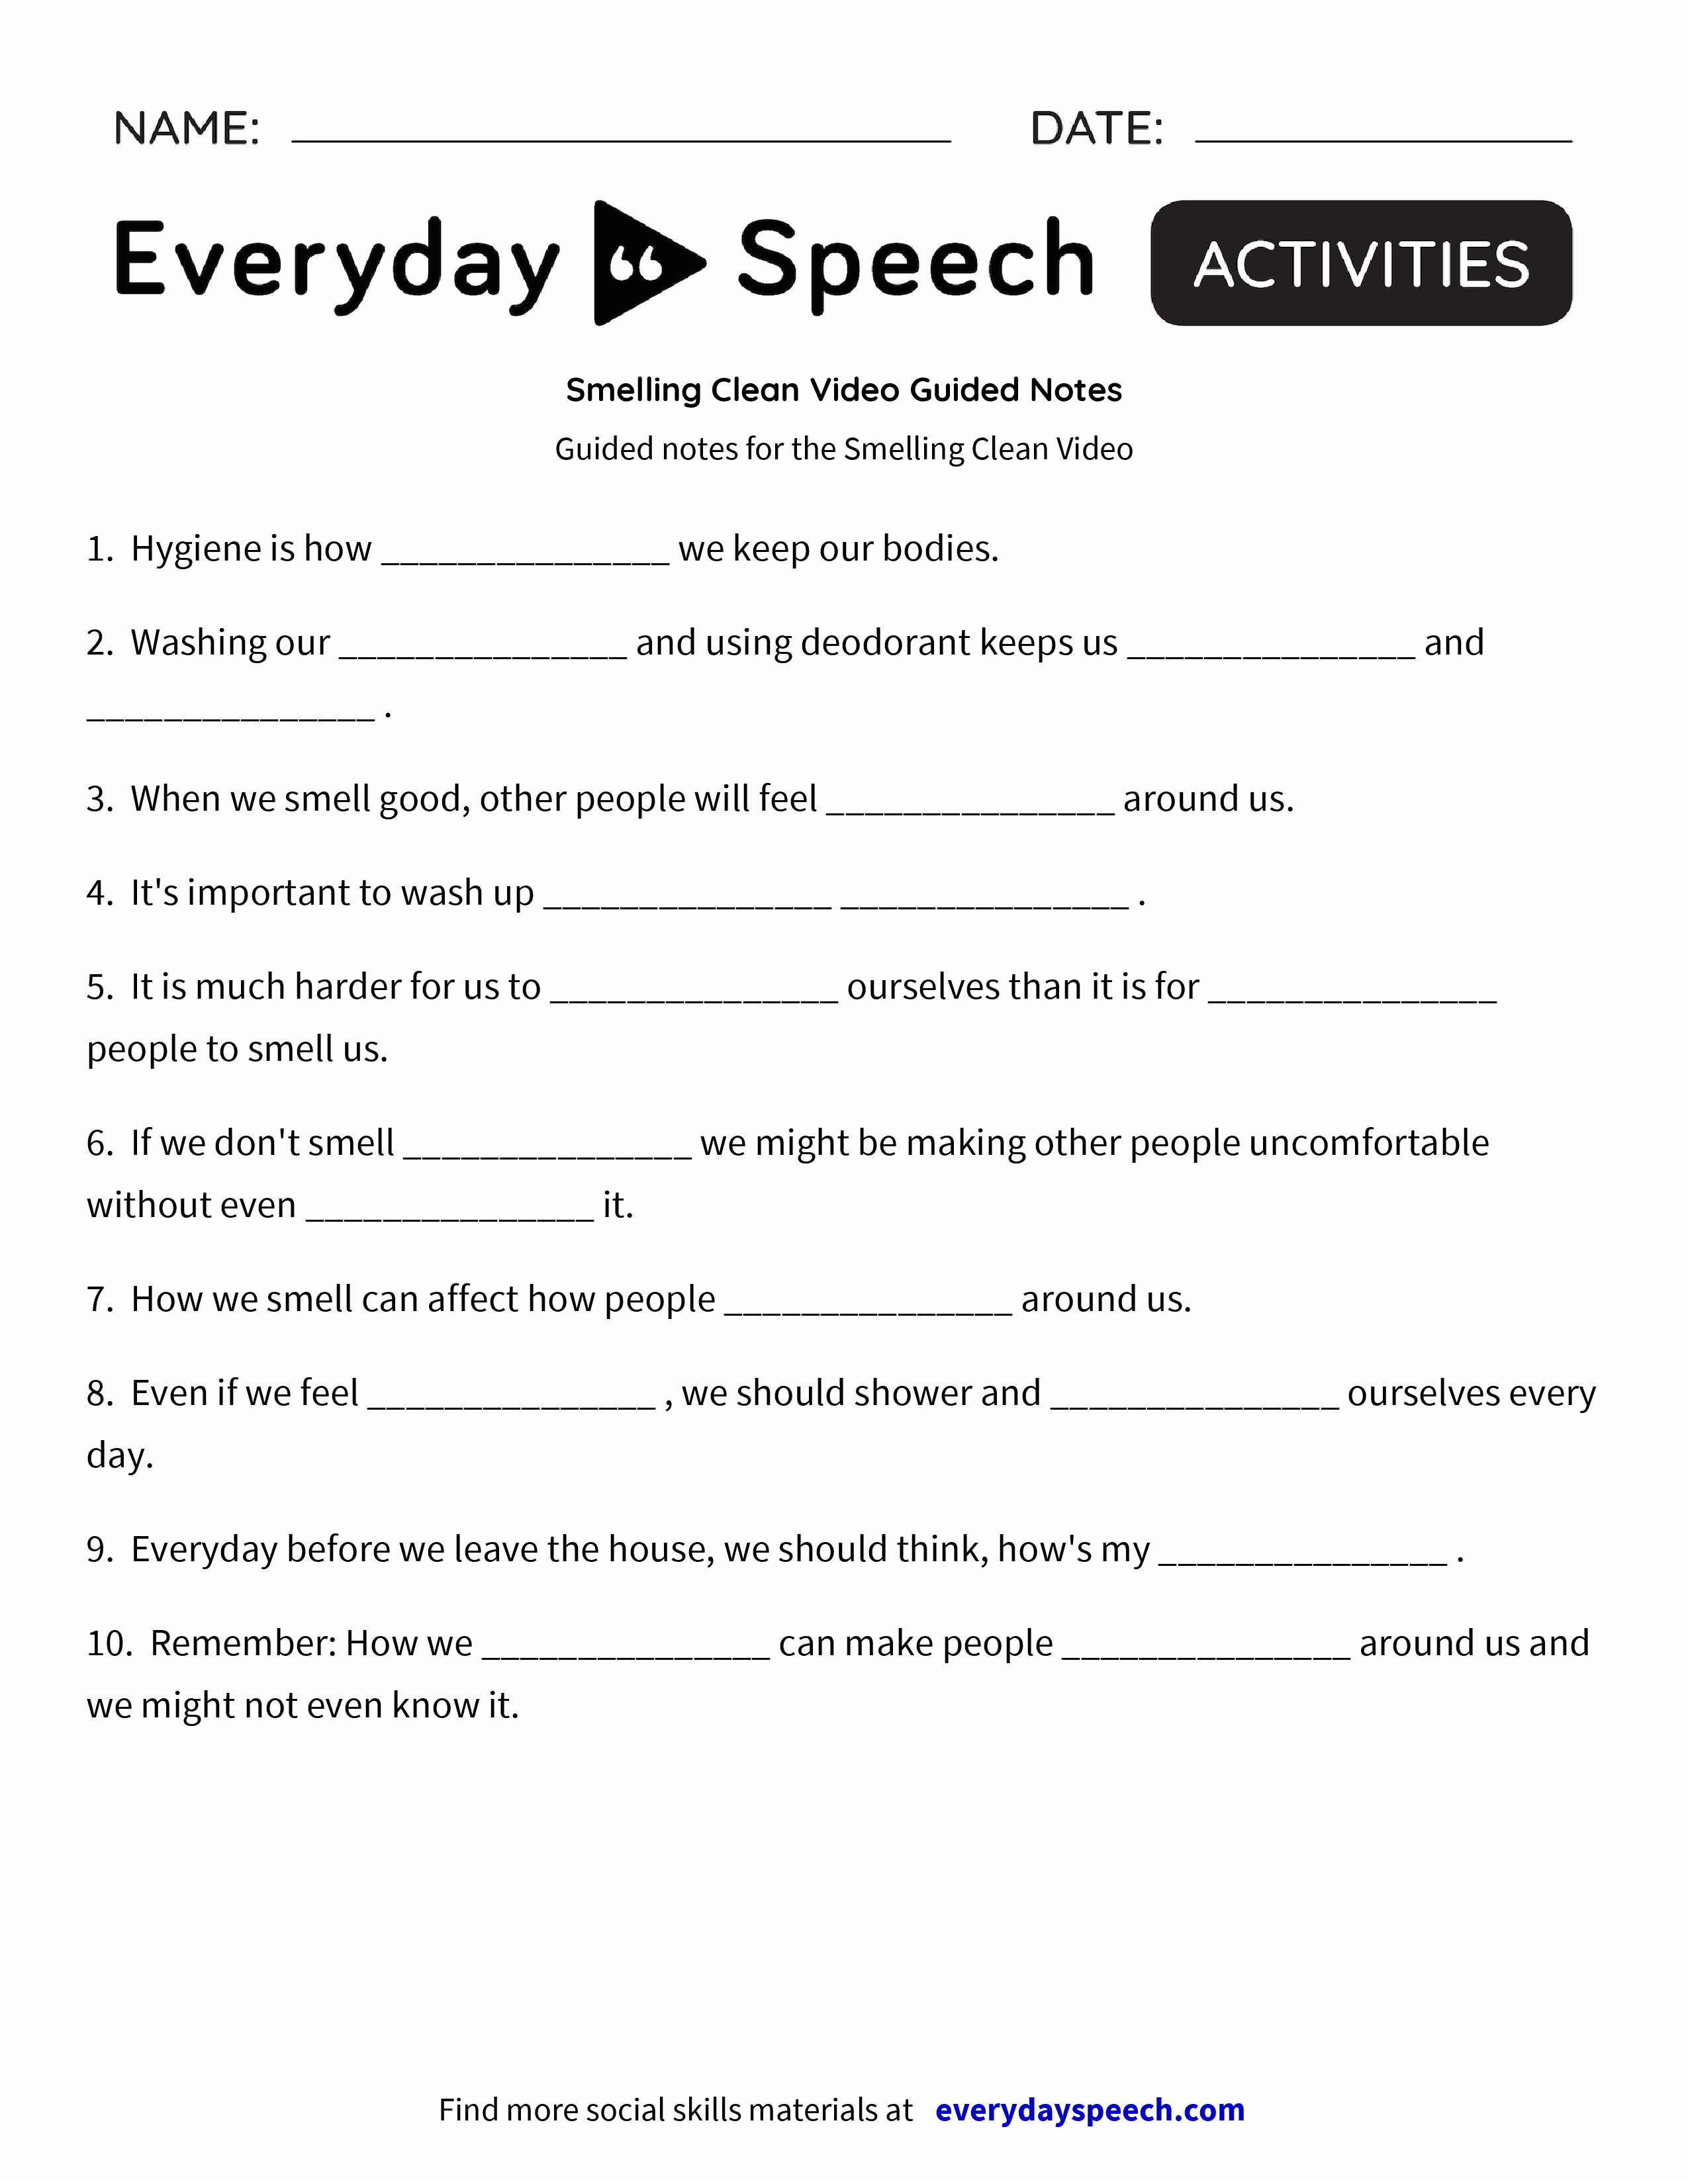 Worksheets Free Anger Management Worksheets 100 anger management worksheets free worksheet hygiene personal for kids